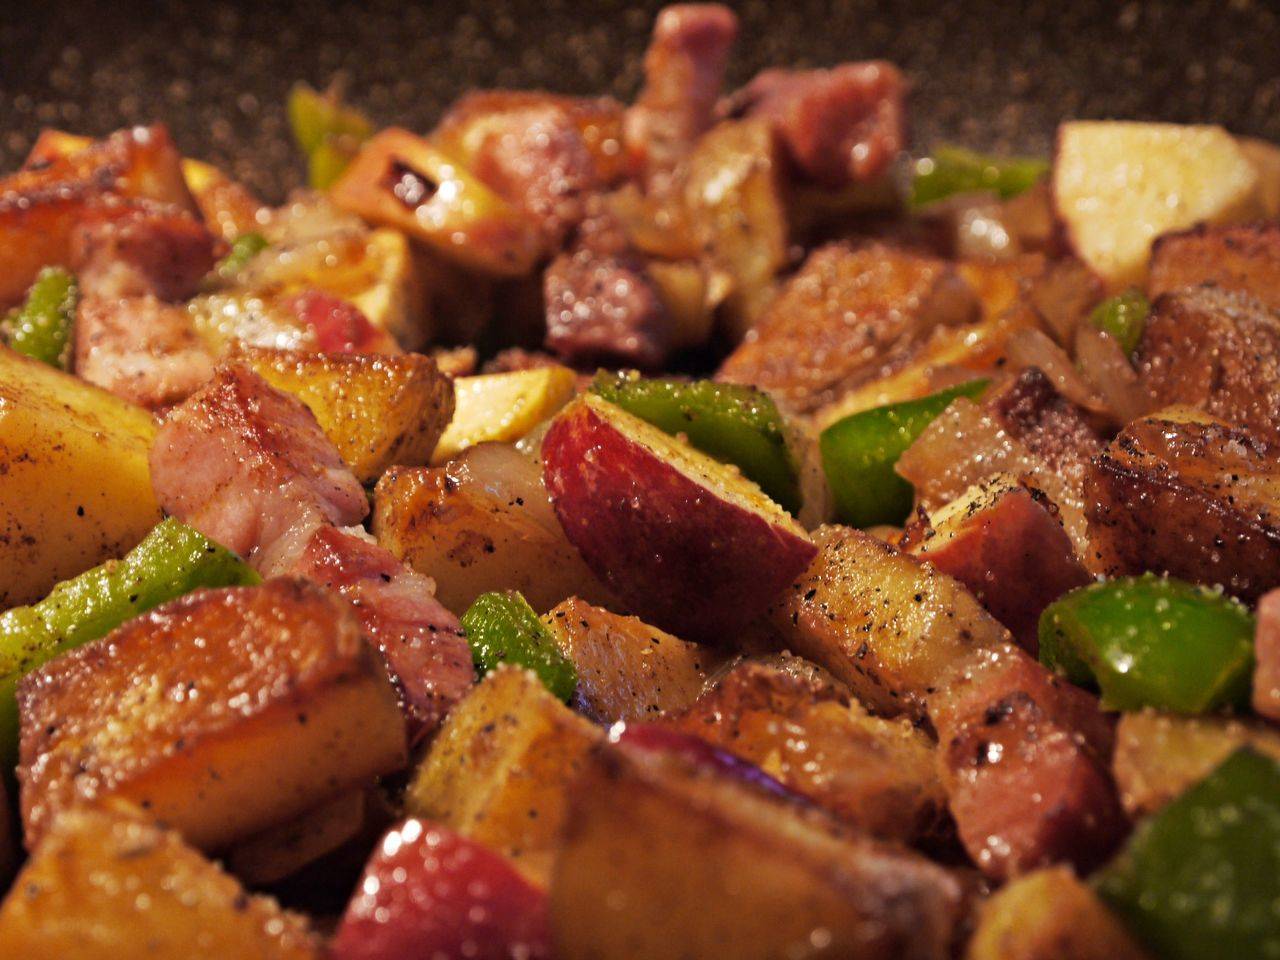 Apple Close-up Cooked Focus On Foreground Food Food And Drink Freshness Gourmet Home Cooking Indoors  Meat No People One Pan Paprica Potatoes Ready-to-eat Red Meat SLICE Spicy